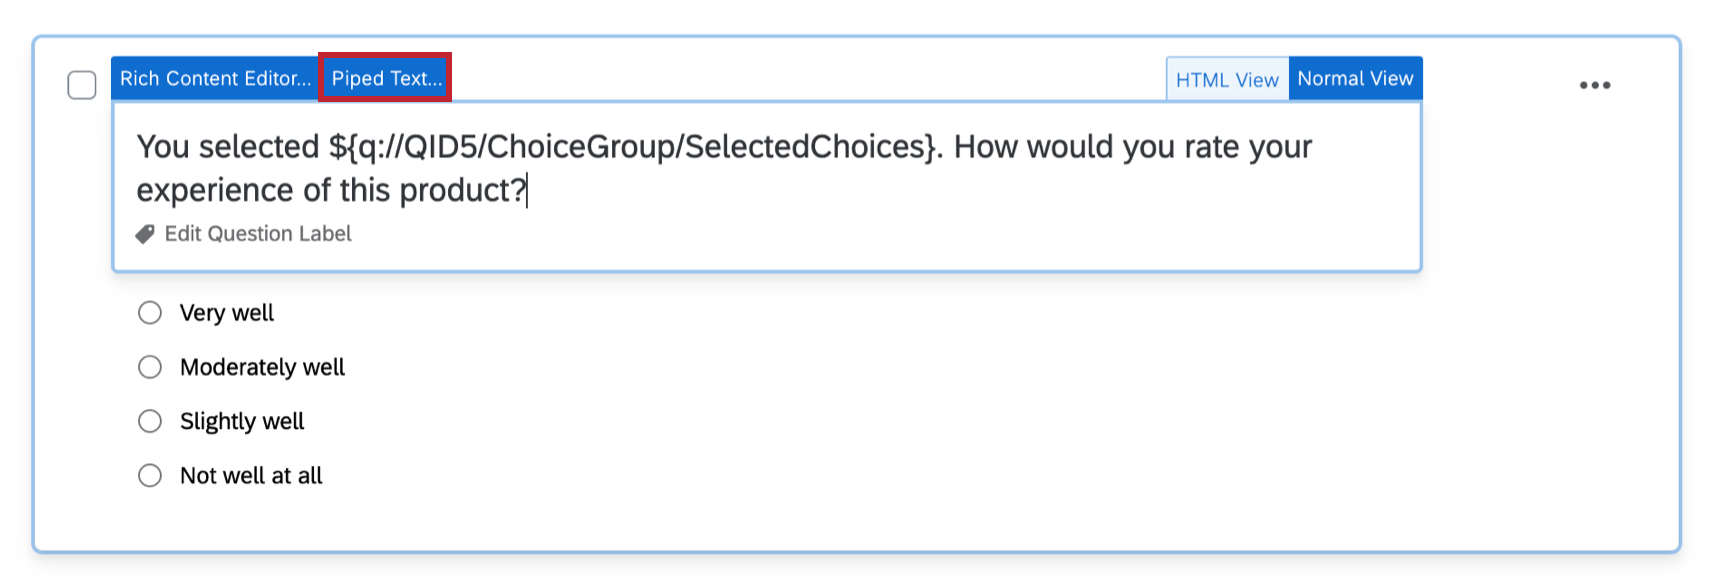 When you click to edit the text of a question, the Piped Text button appears on the upper left